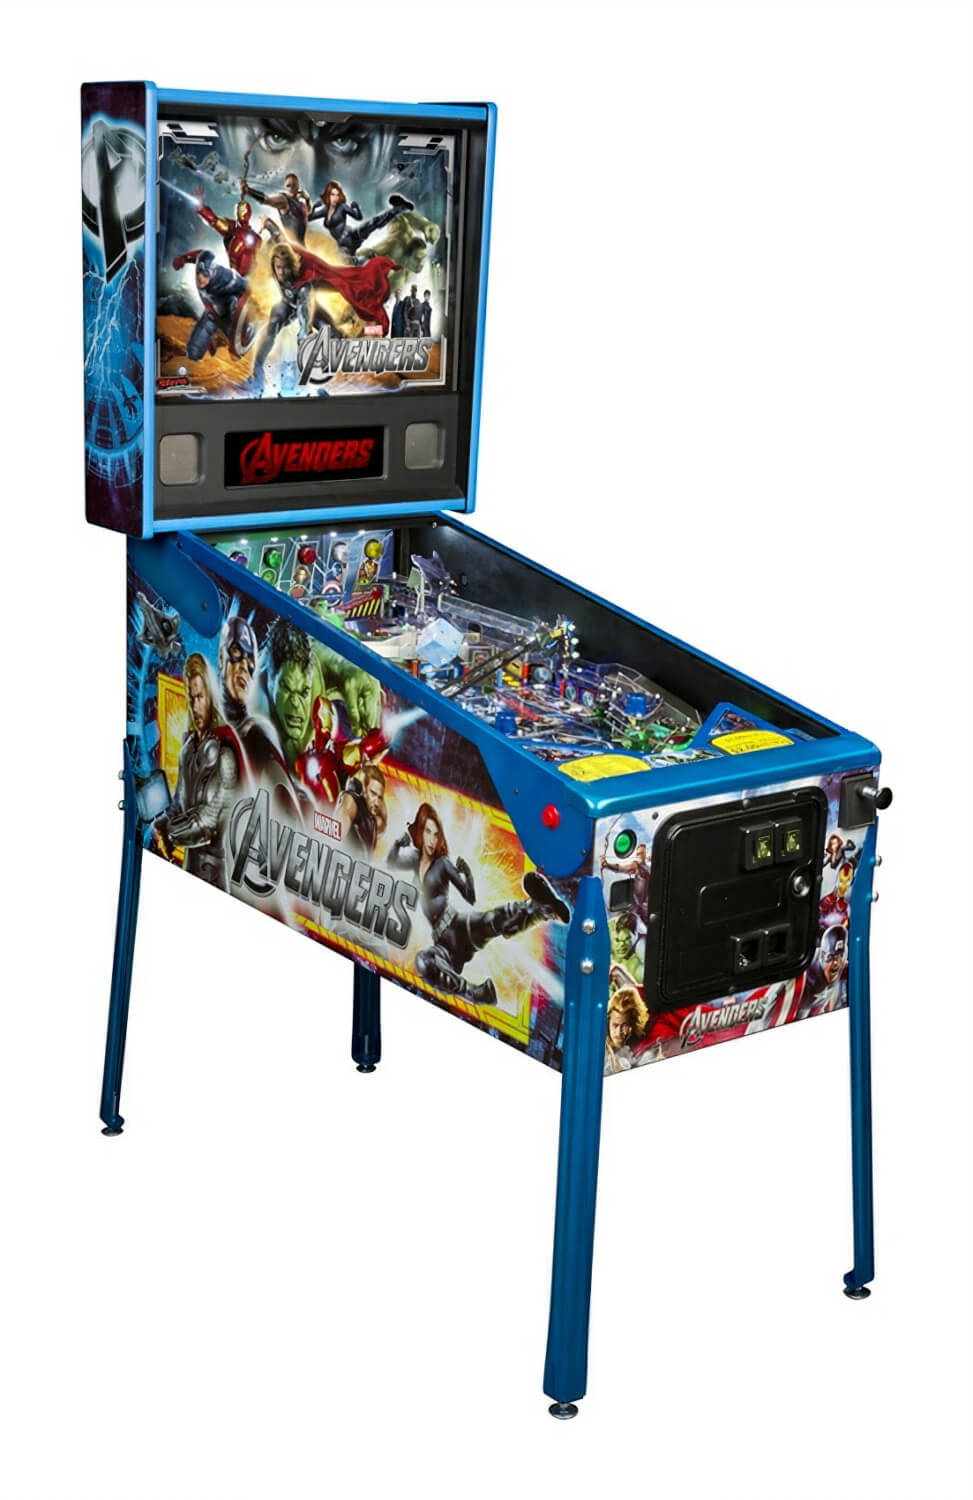 Stern Avengers Limited Edition Pinball Machine Liberty Games